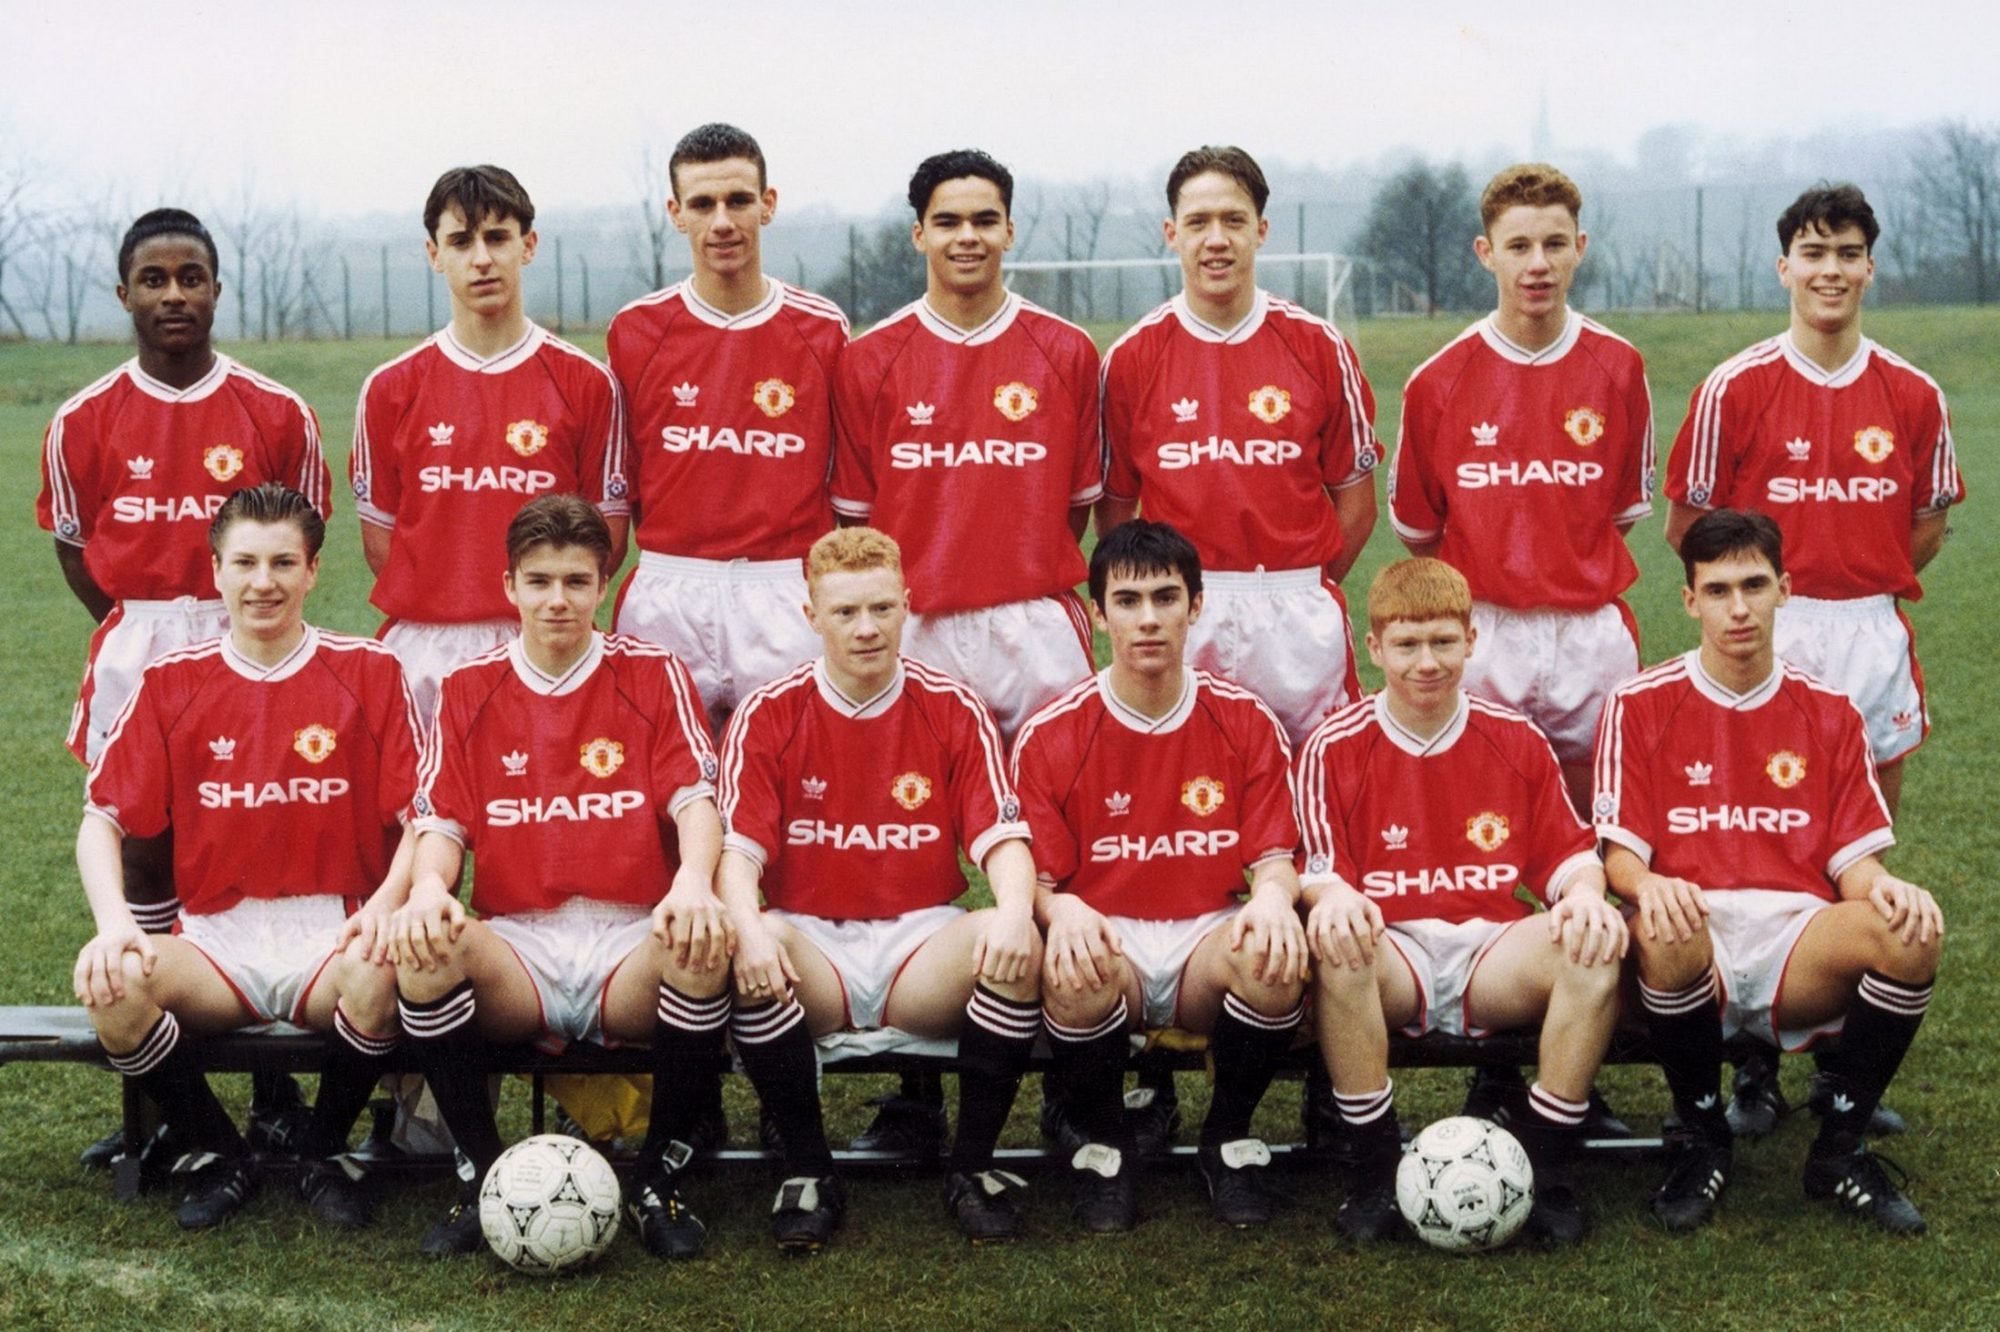 Manchester United class of 92 - wearing what could be a classic football shirt mystery box item